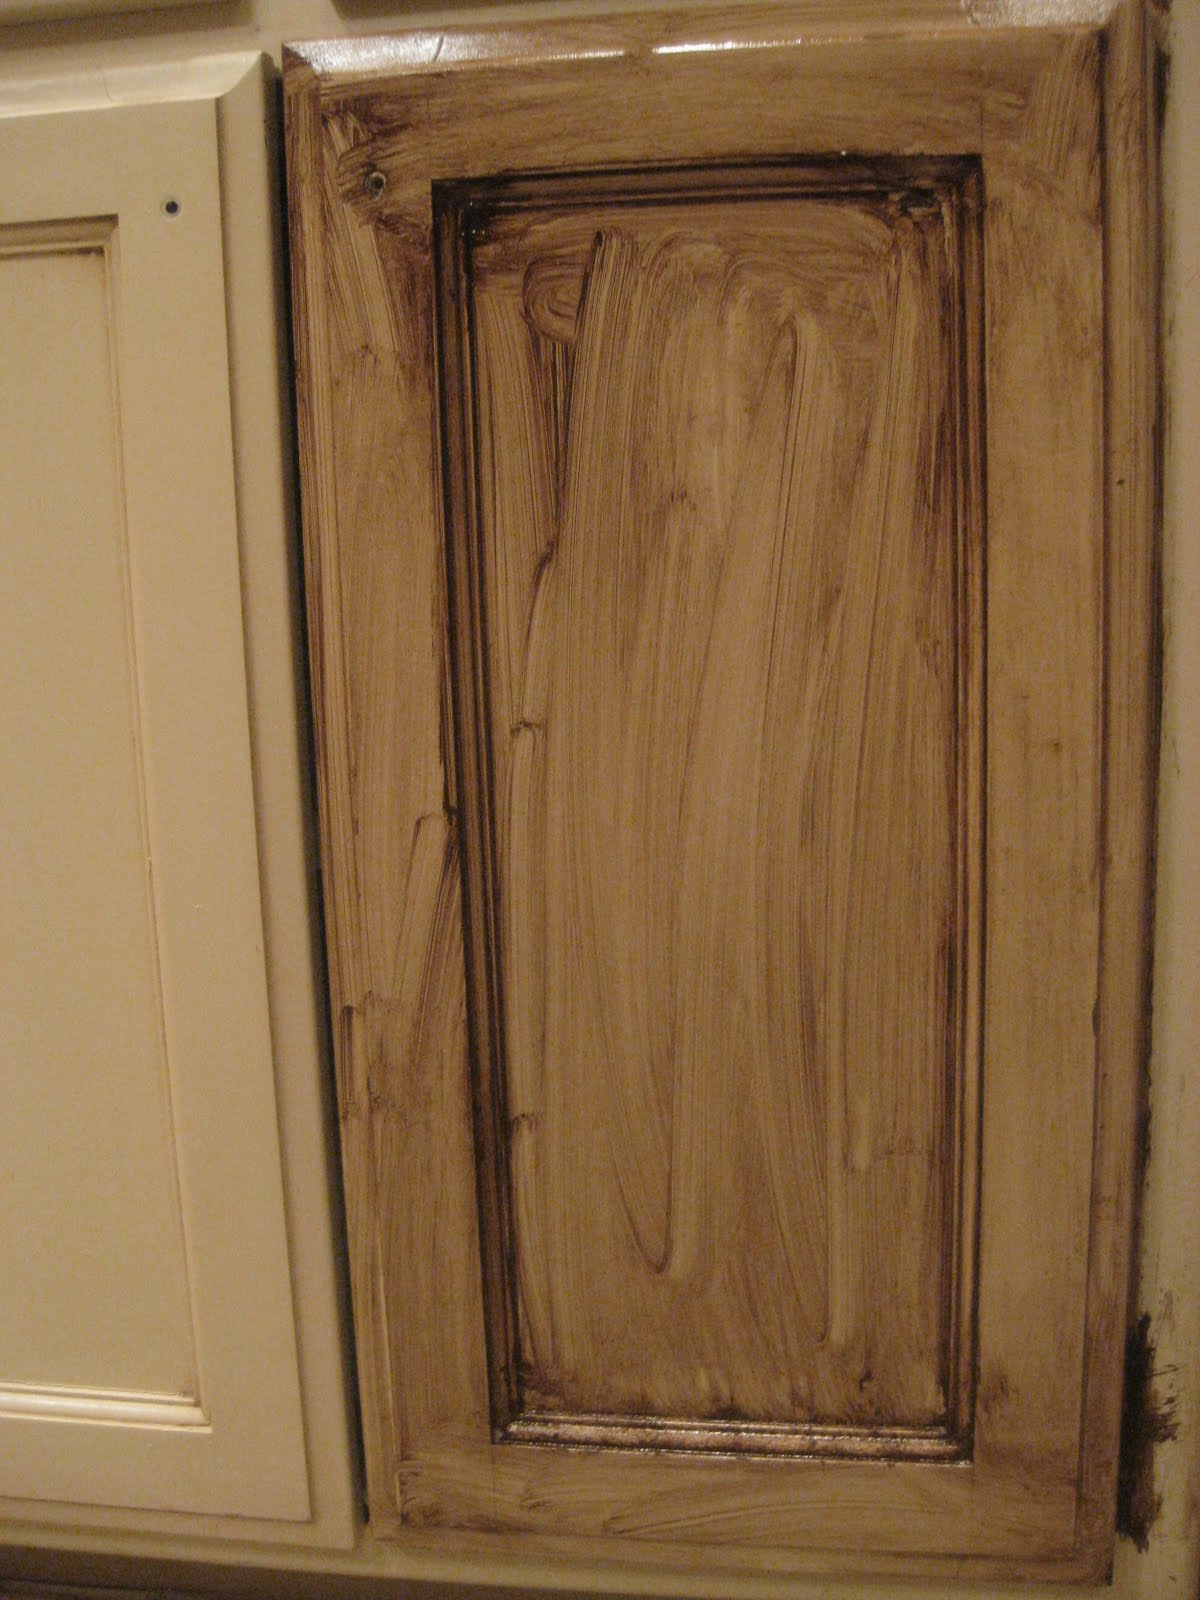 Kitchen Cabinets Glazed kristen's creations: ~~glazing painted kitchen cabinets~~